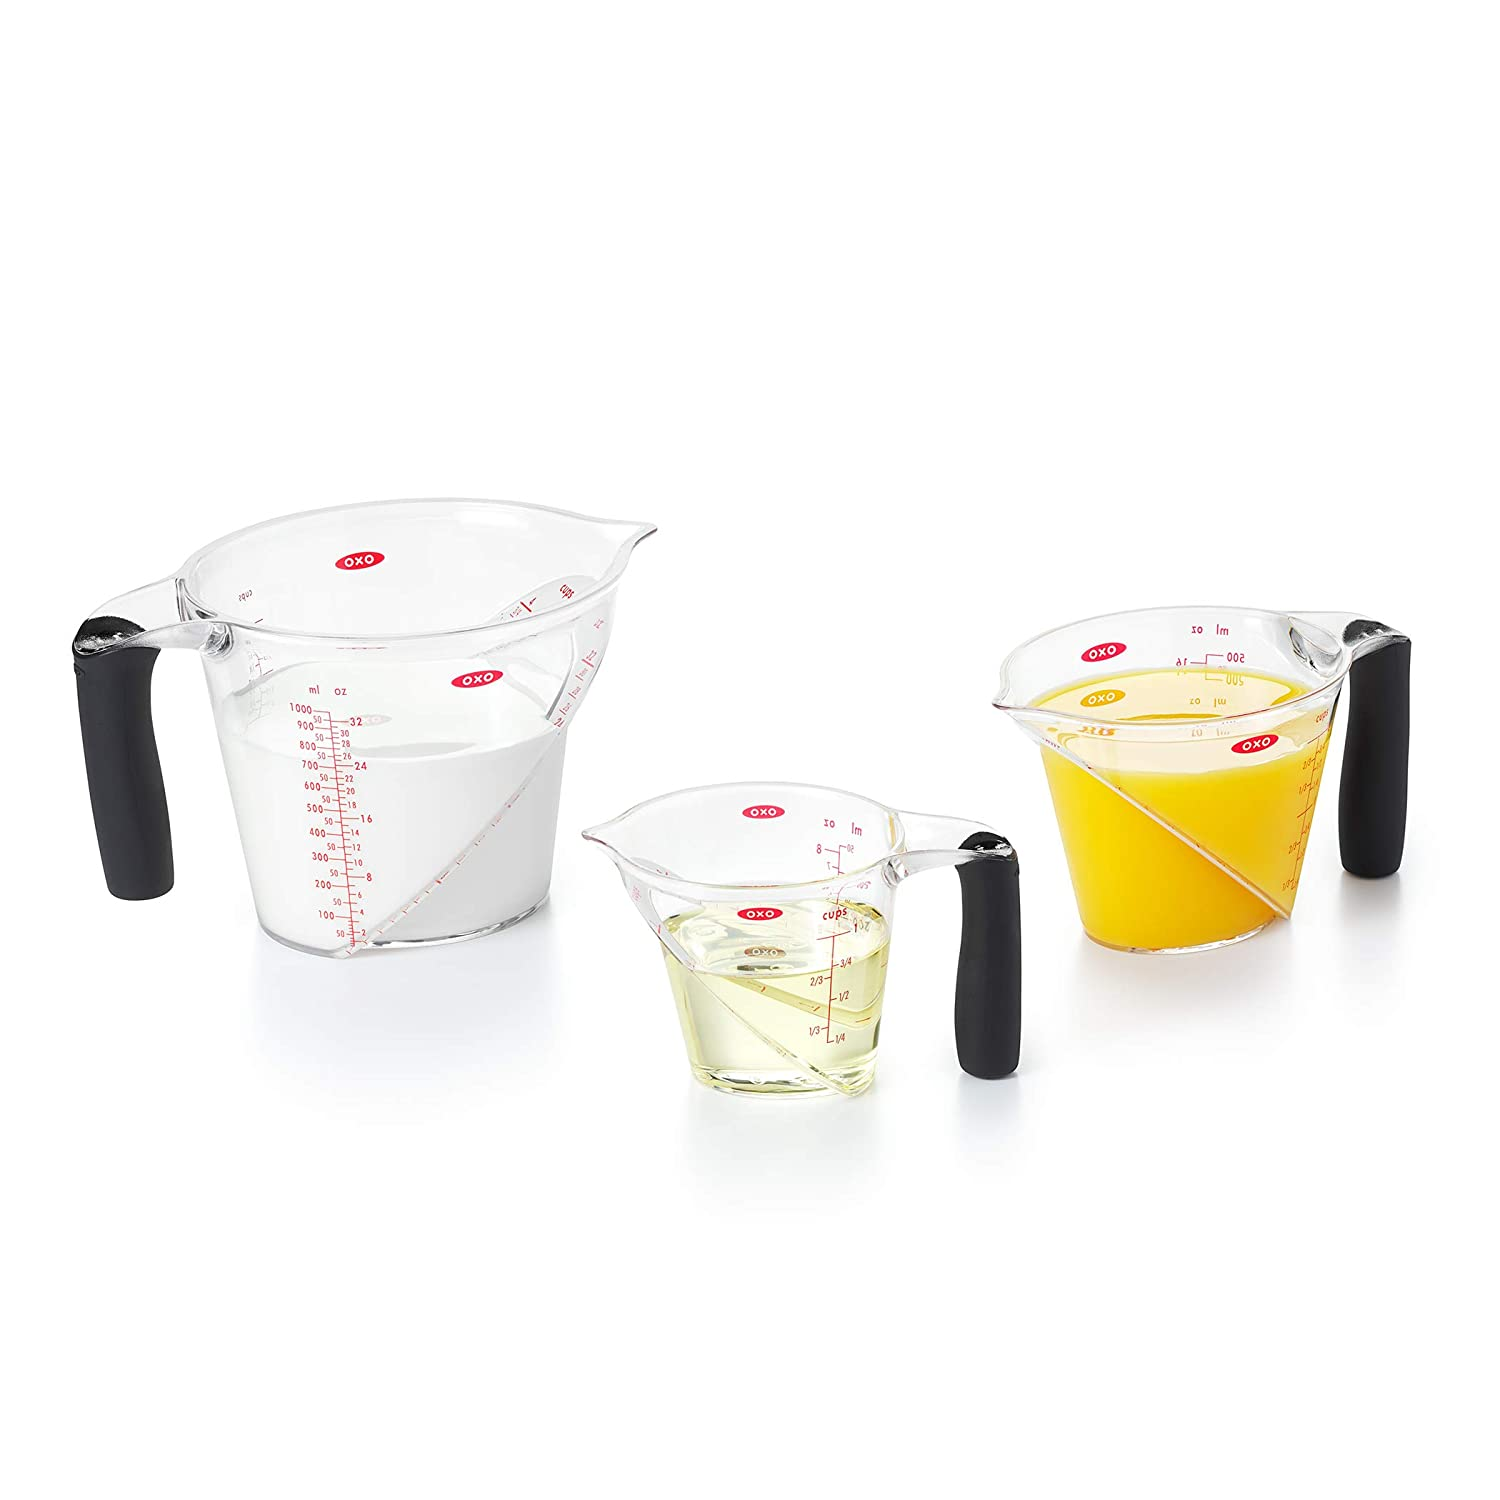 OXO Good Grips 3-Piece Angled Measuring Cup Set